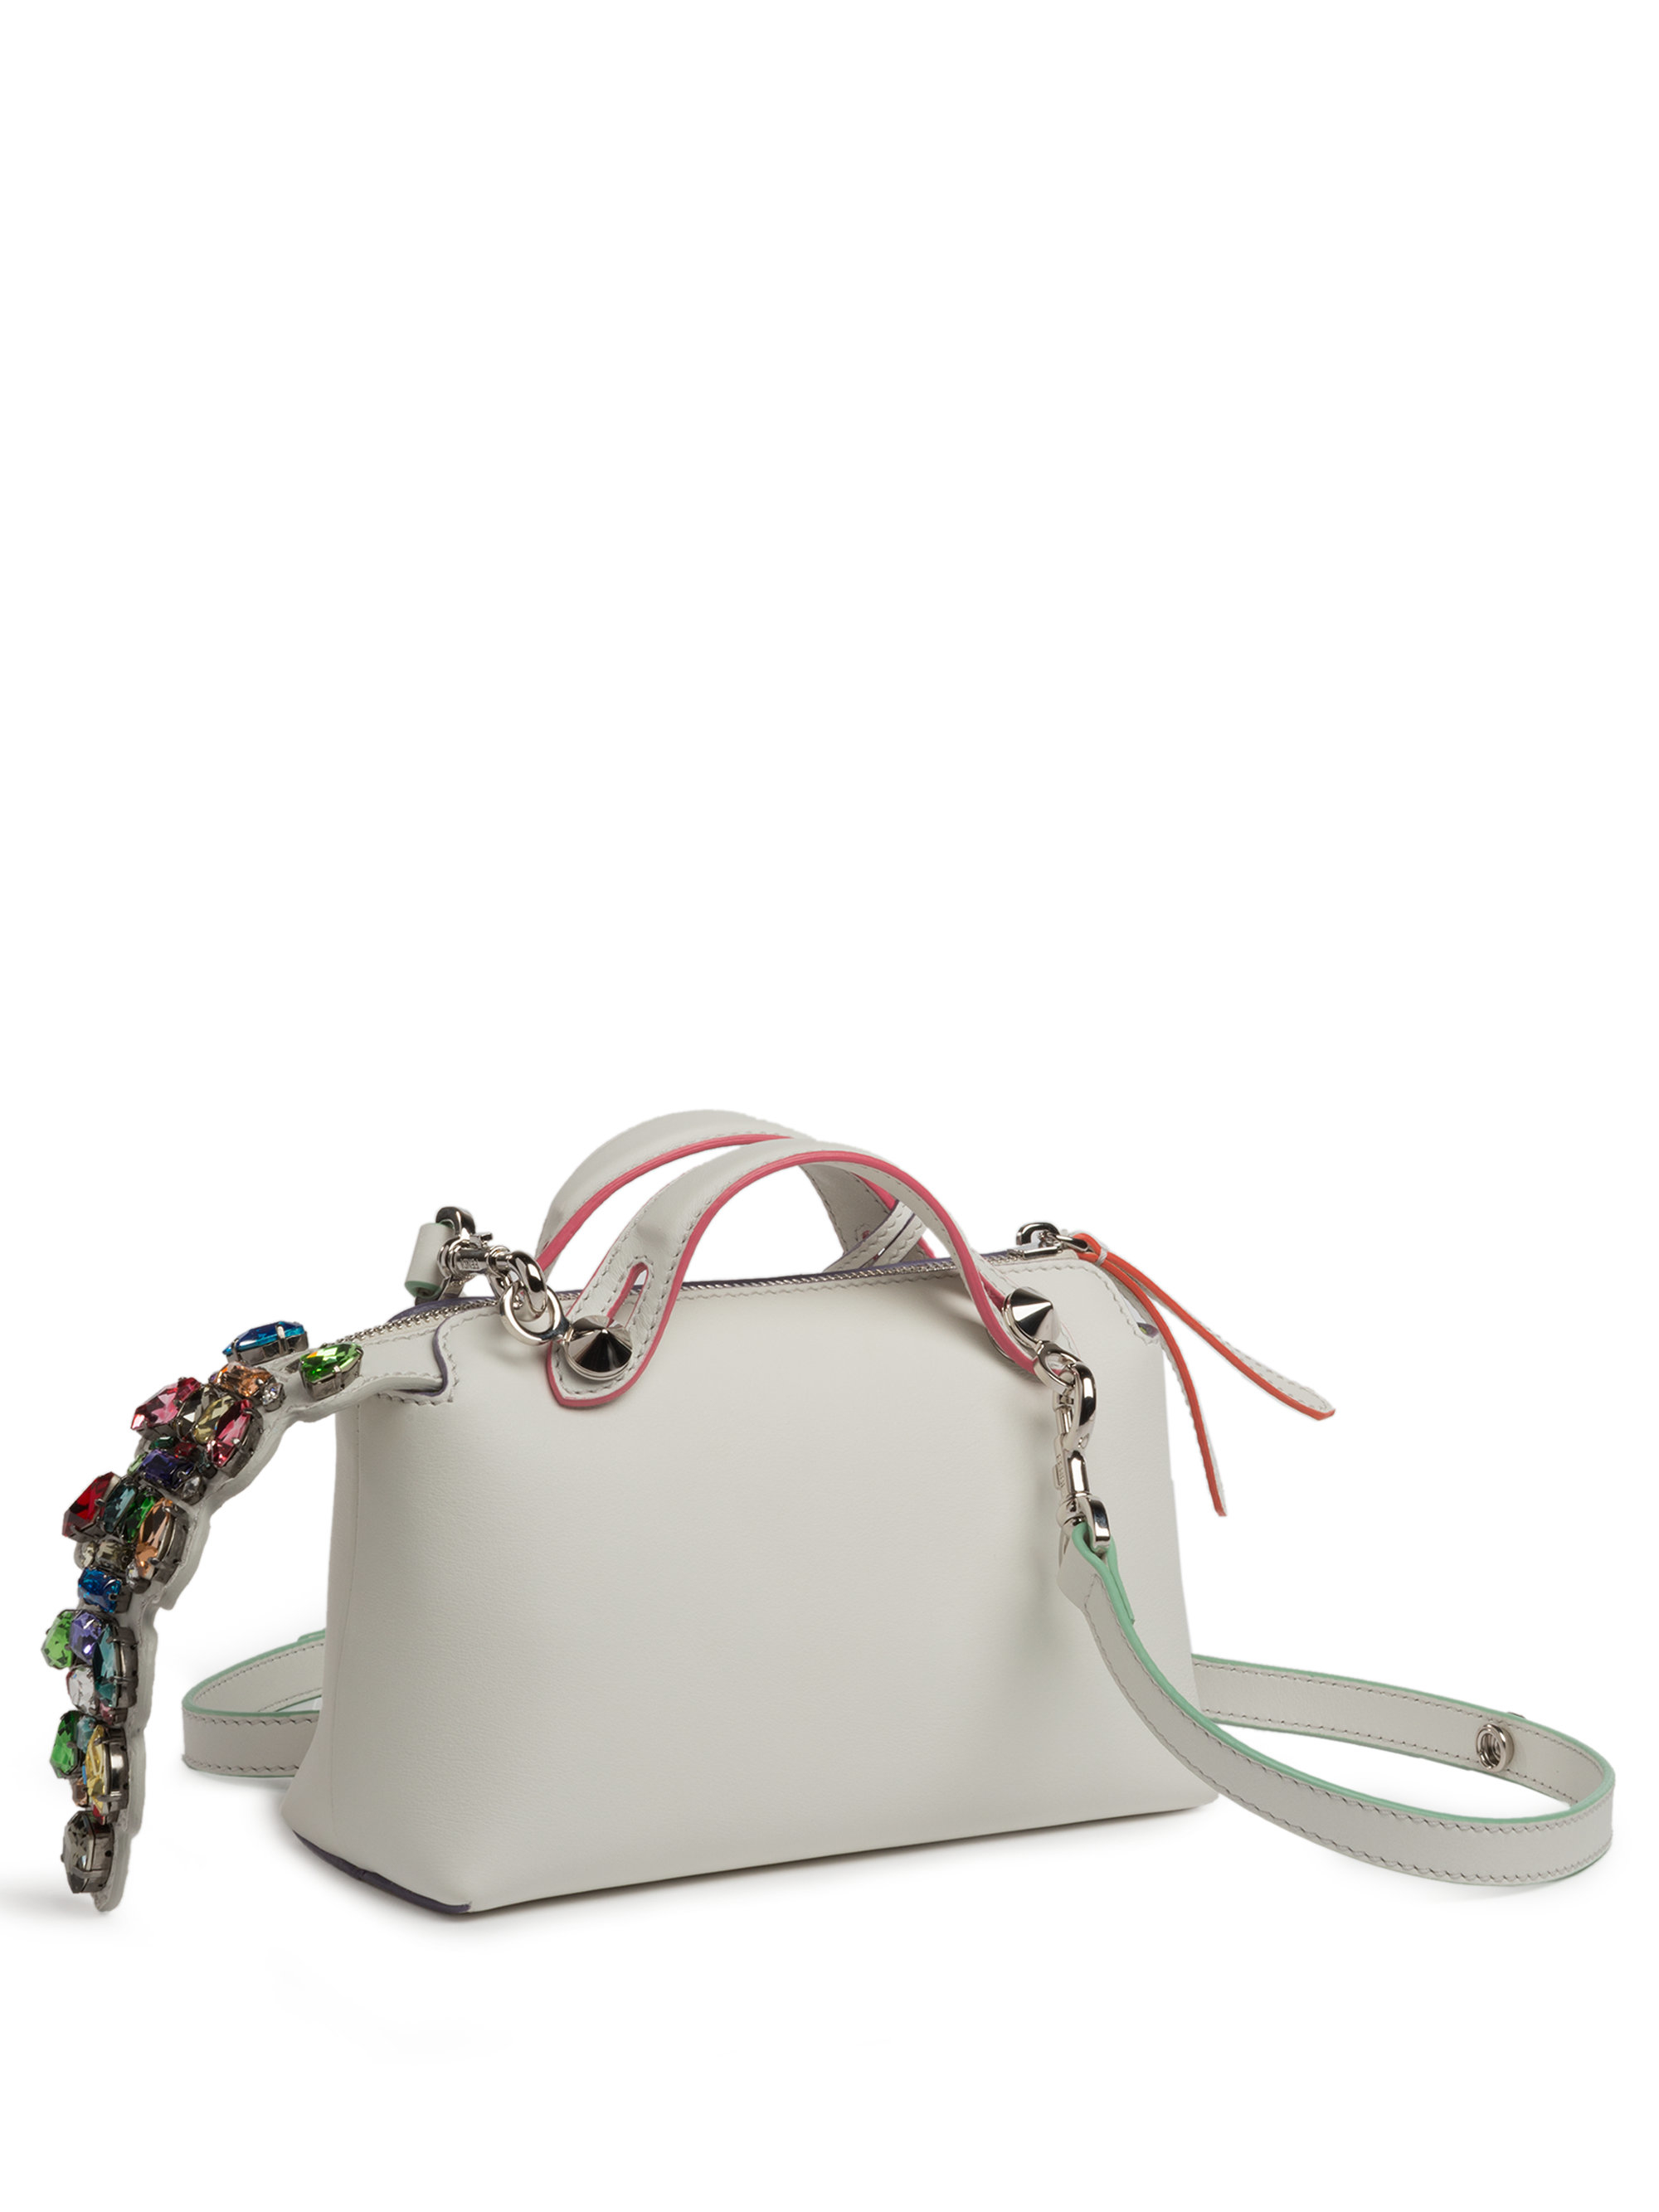 0a87e2cfb5 Lyst - Fendi By The Way Mini-satchel in White